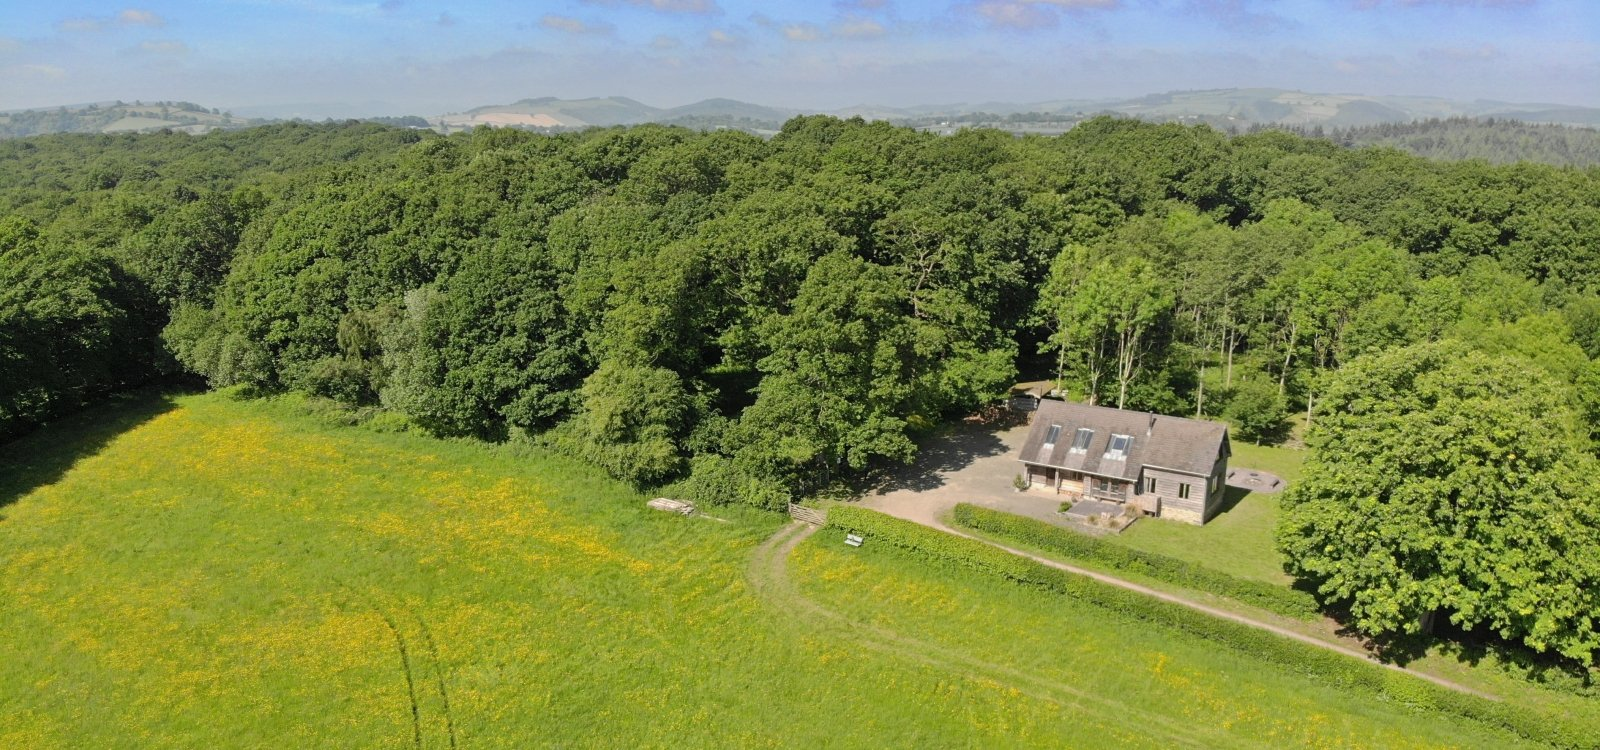 an aerial view of the timber-framed building in a secluded setting surrounded by woodland and fields